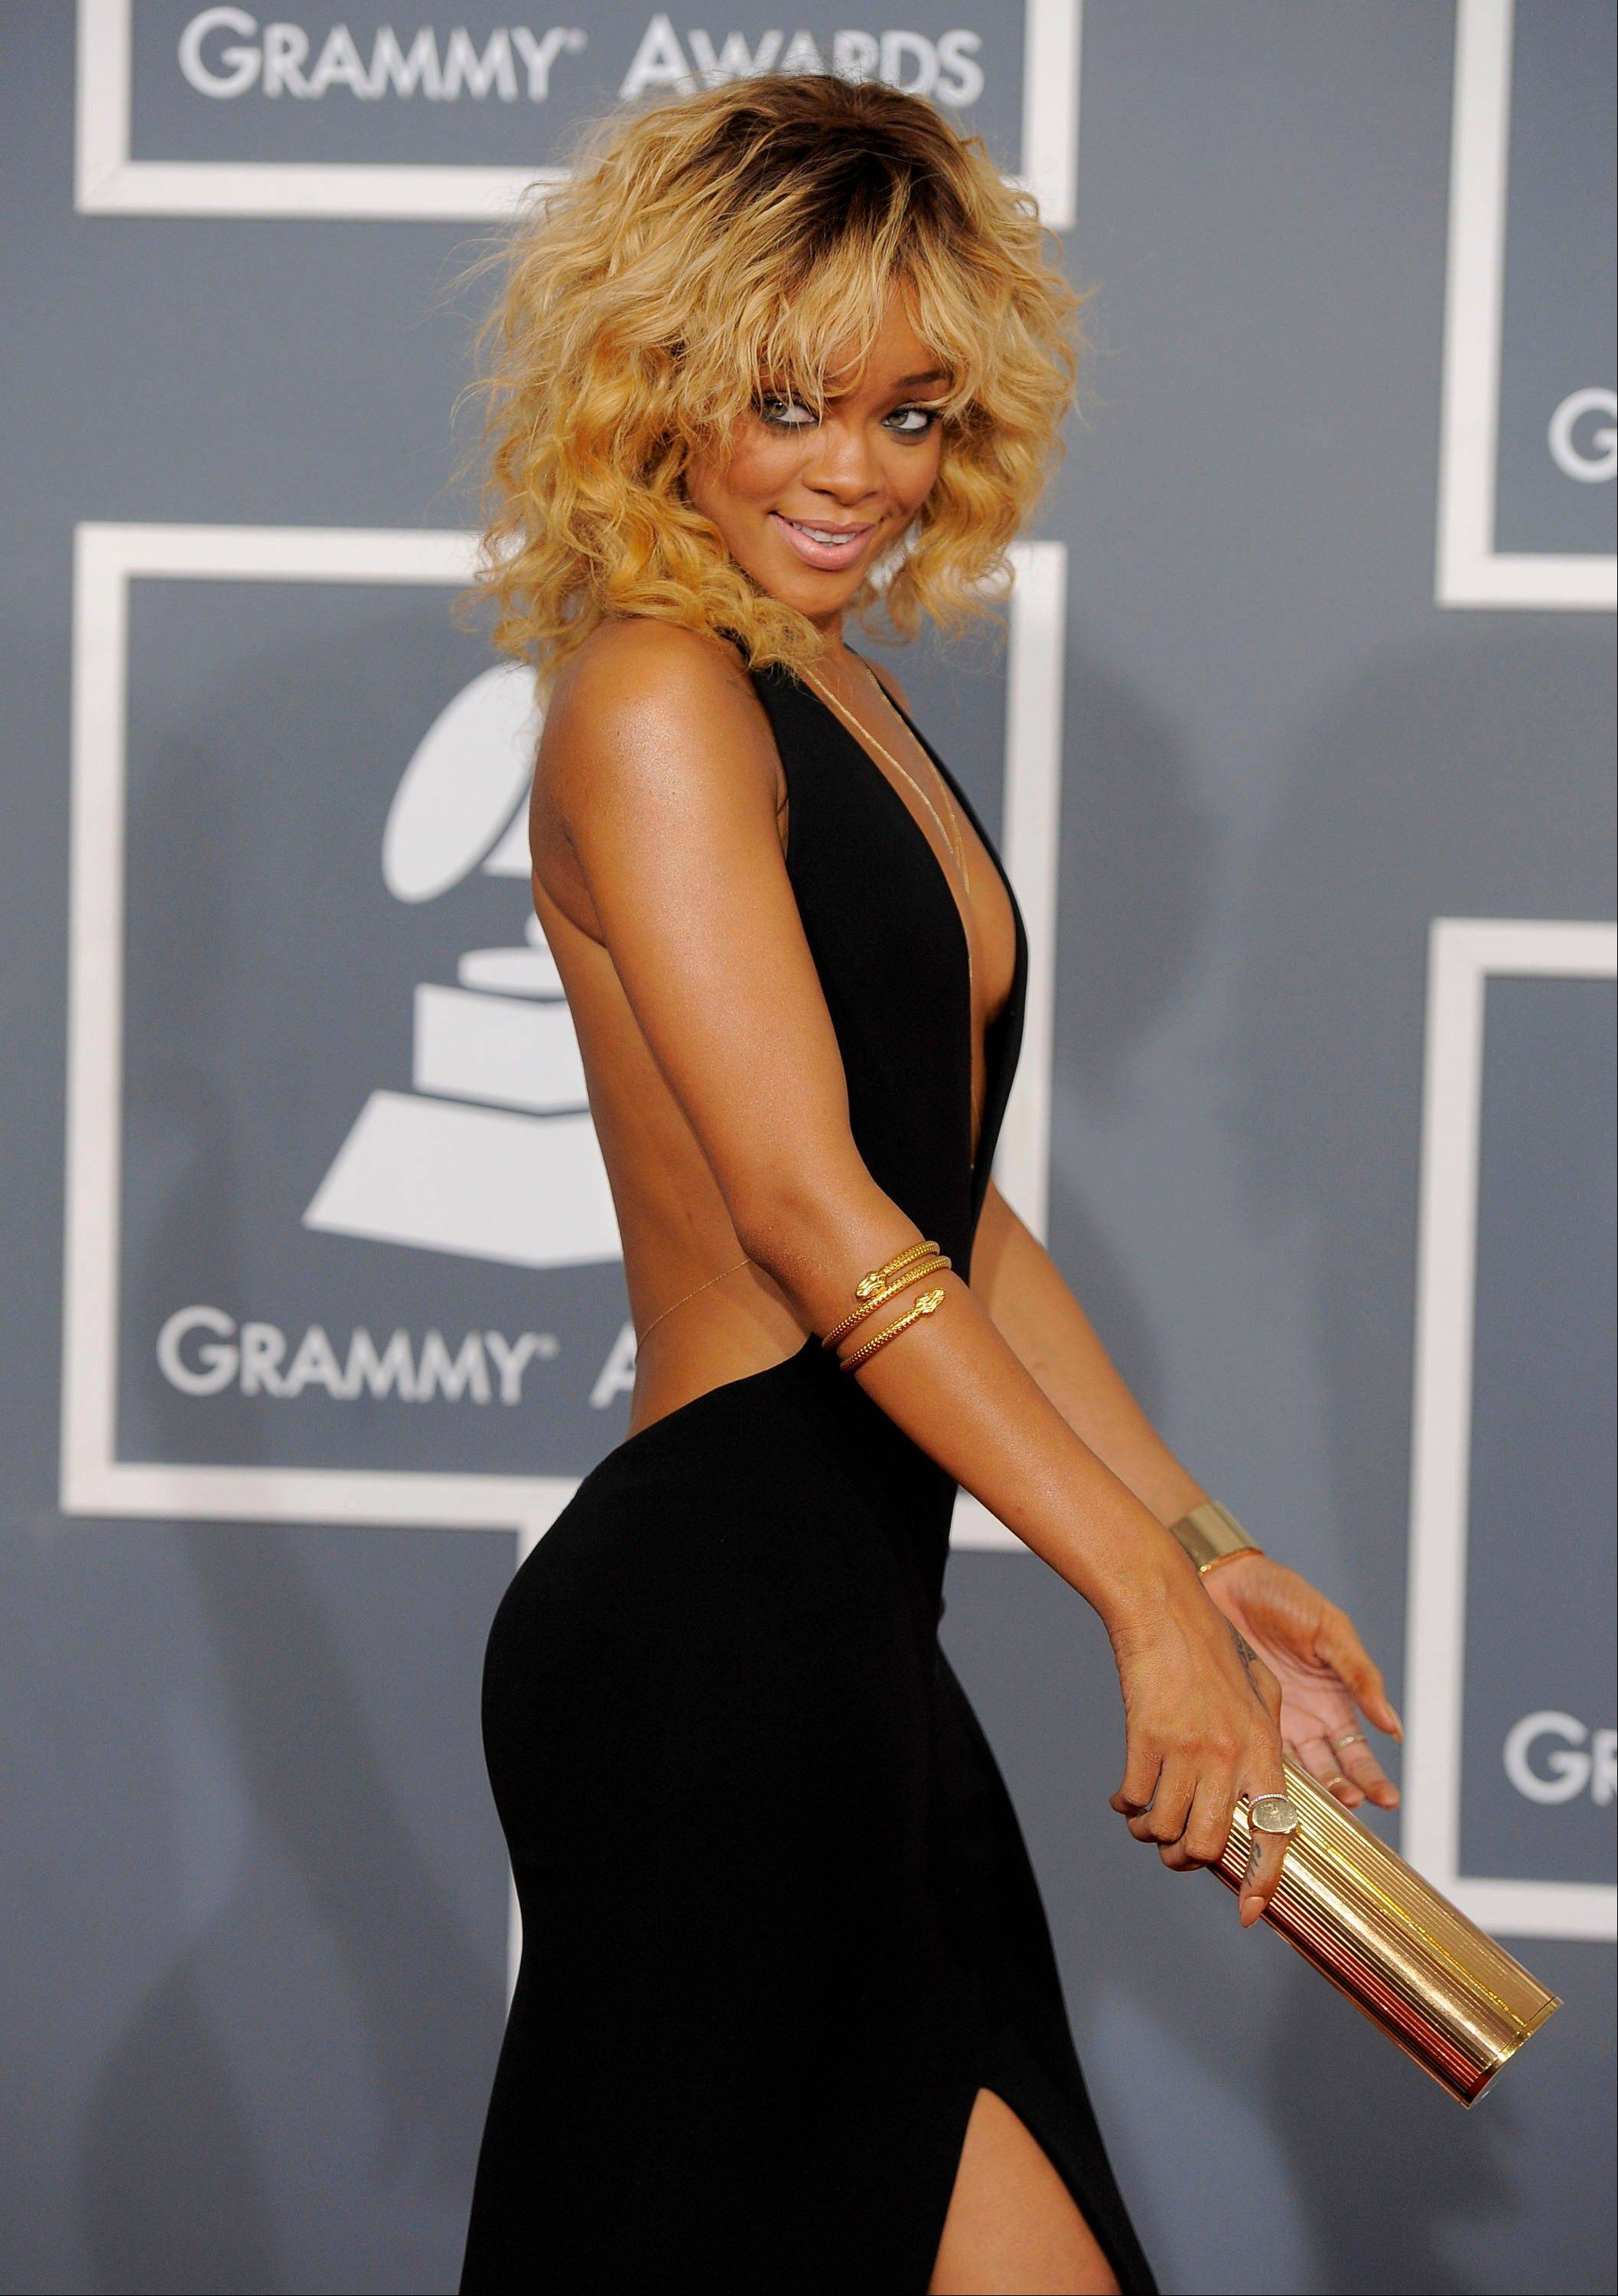 Rihanna arrives Sunday at the 54th annual Grammy Awards in Los Angeles.